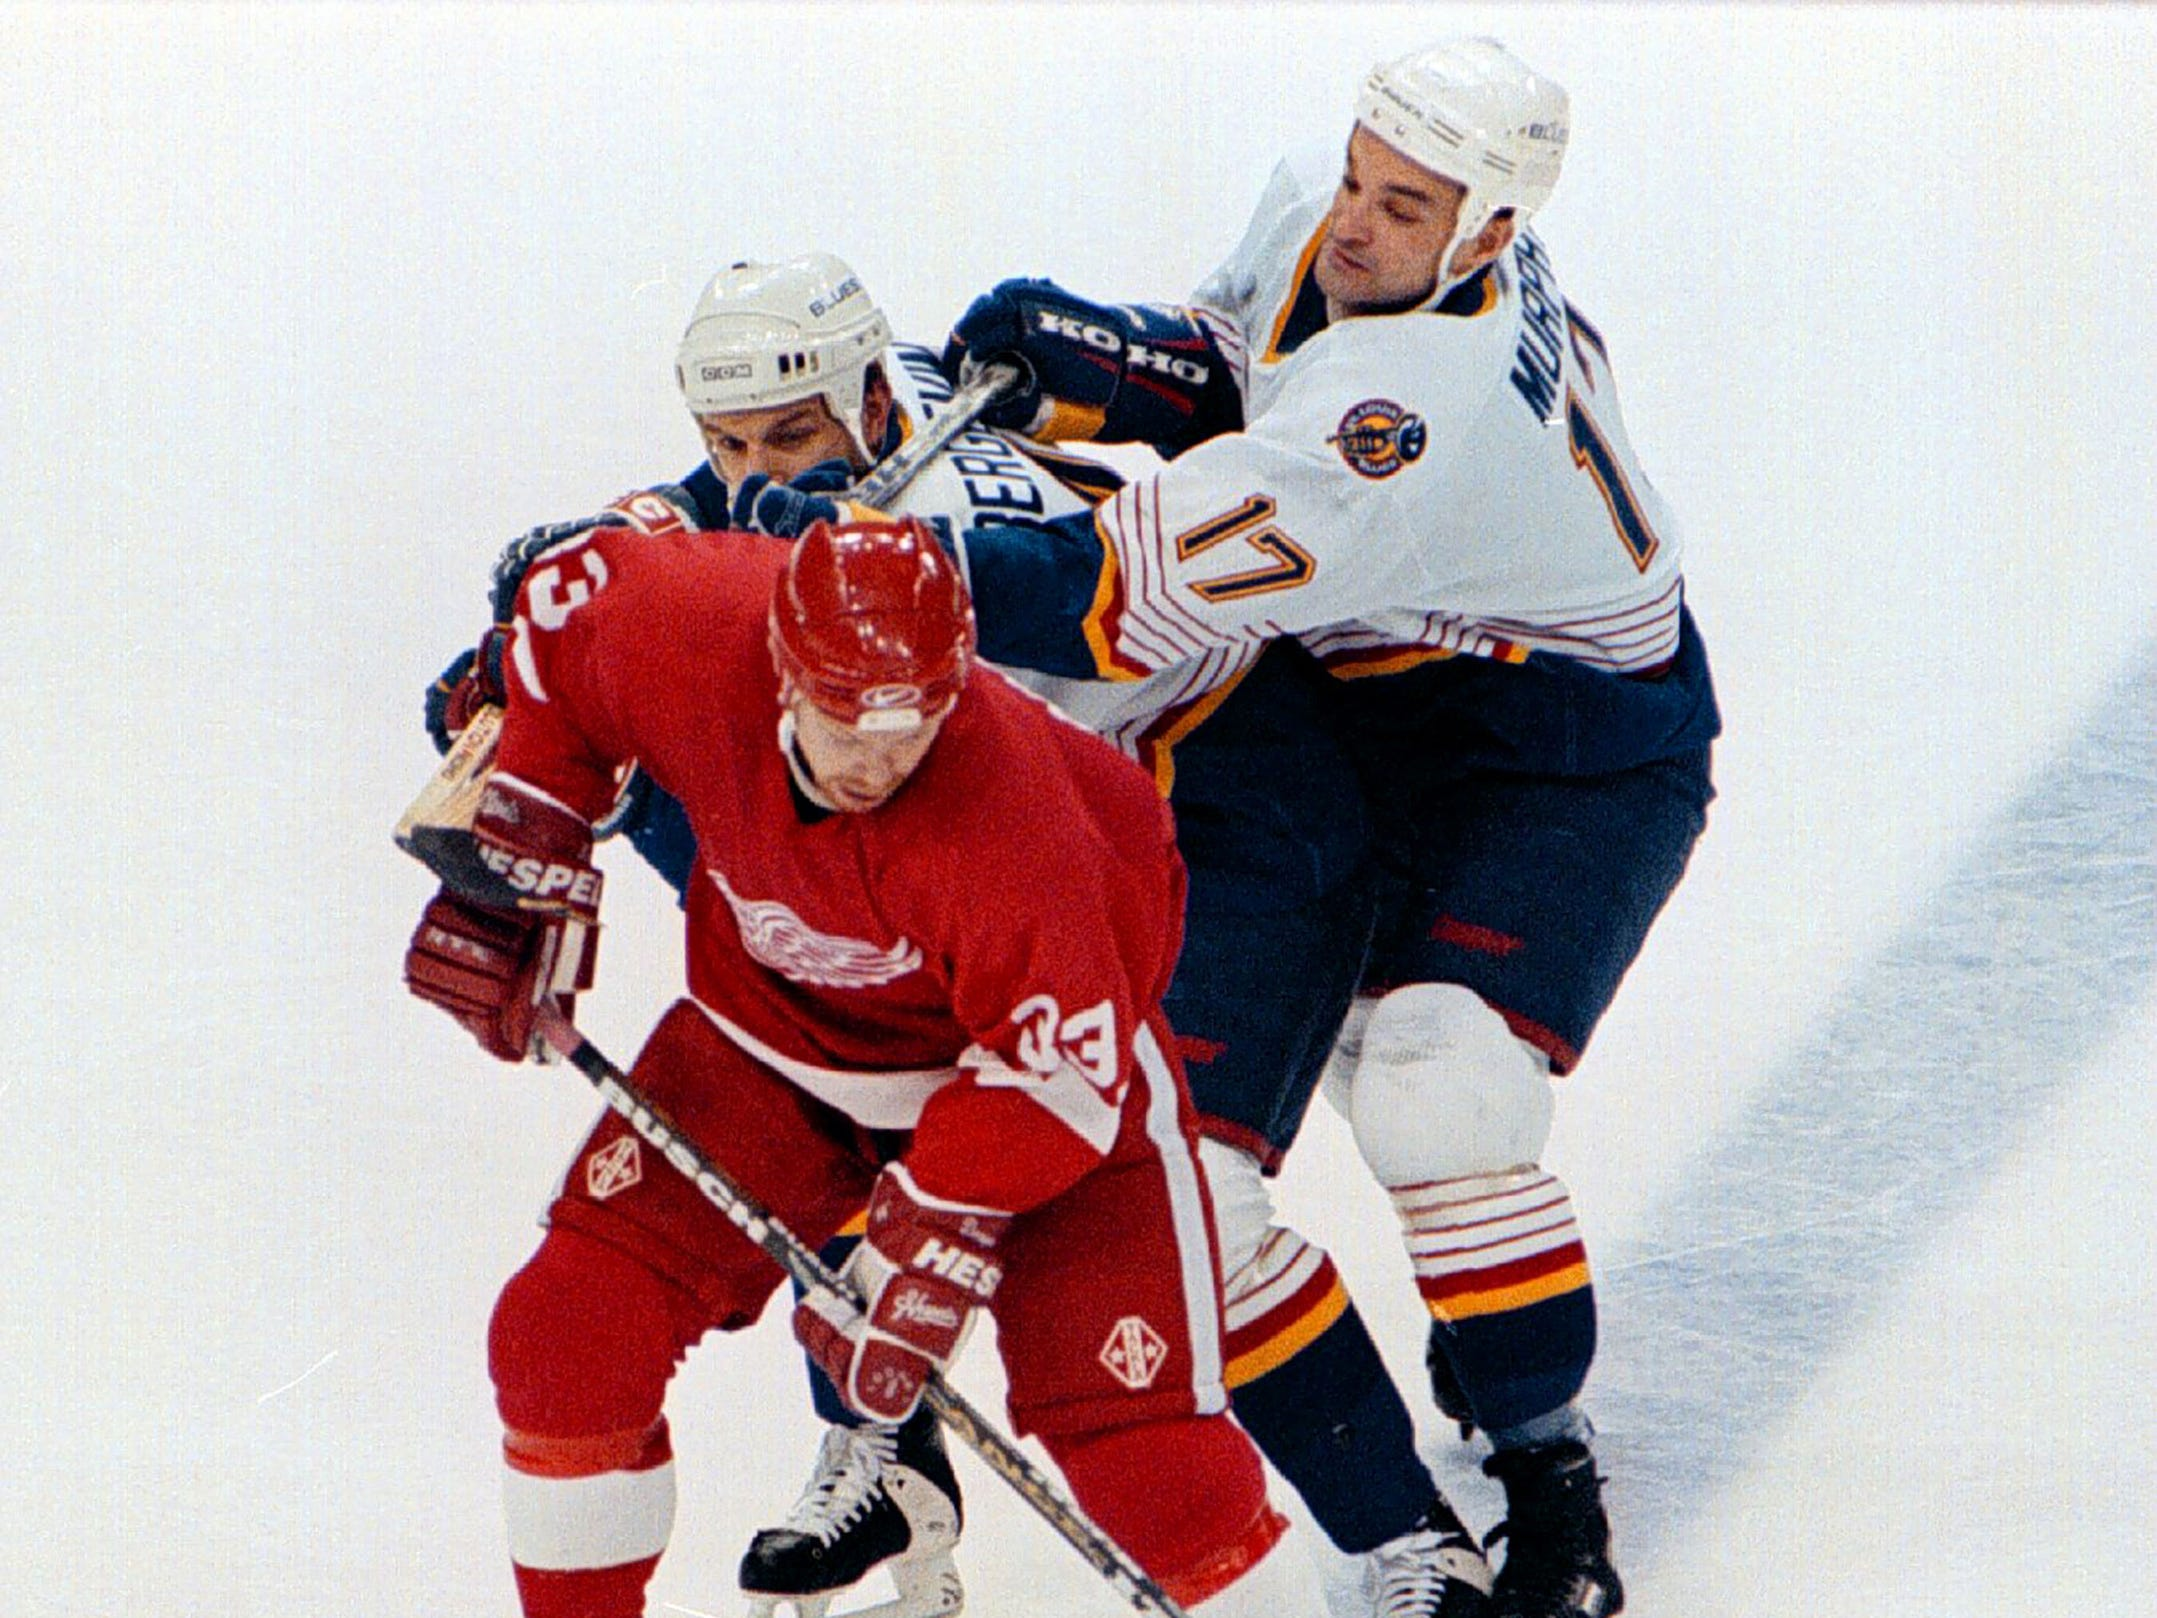 Blues #4 Marc Bergevin and #17 Joe Murphy trying to defense Wings #33 Kris Draper in the lst period.